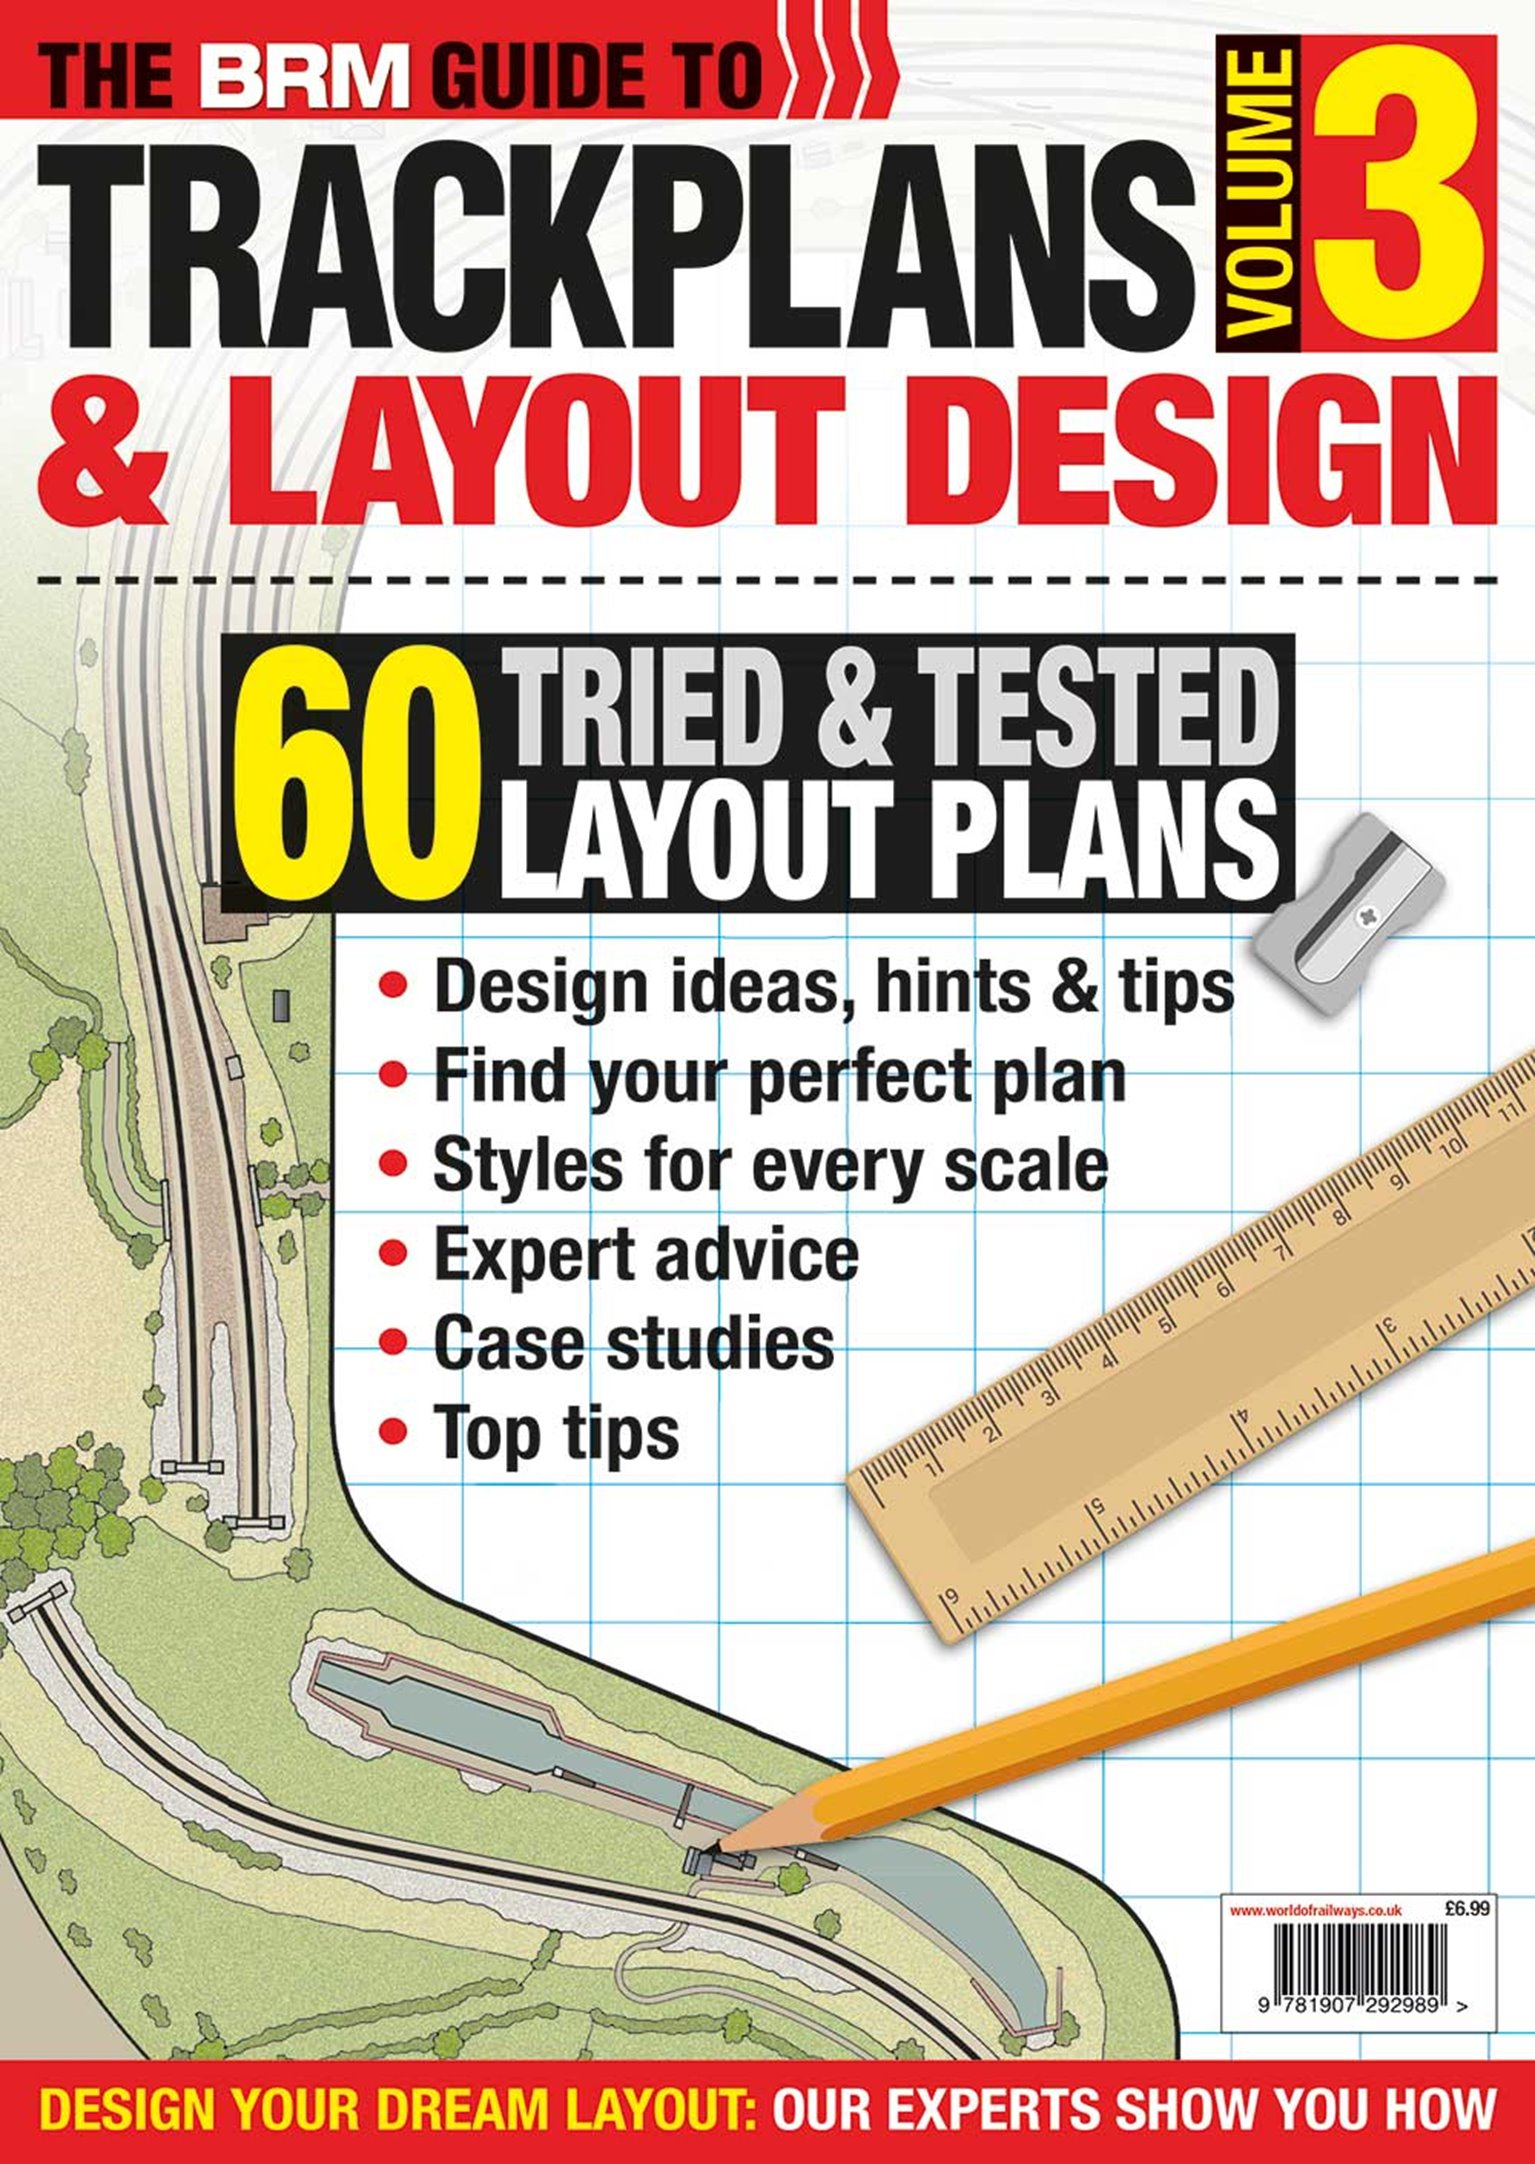 The BRM Guide To Trackplans & Layout Design